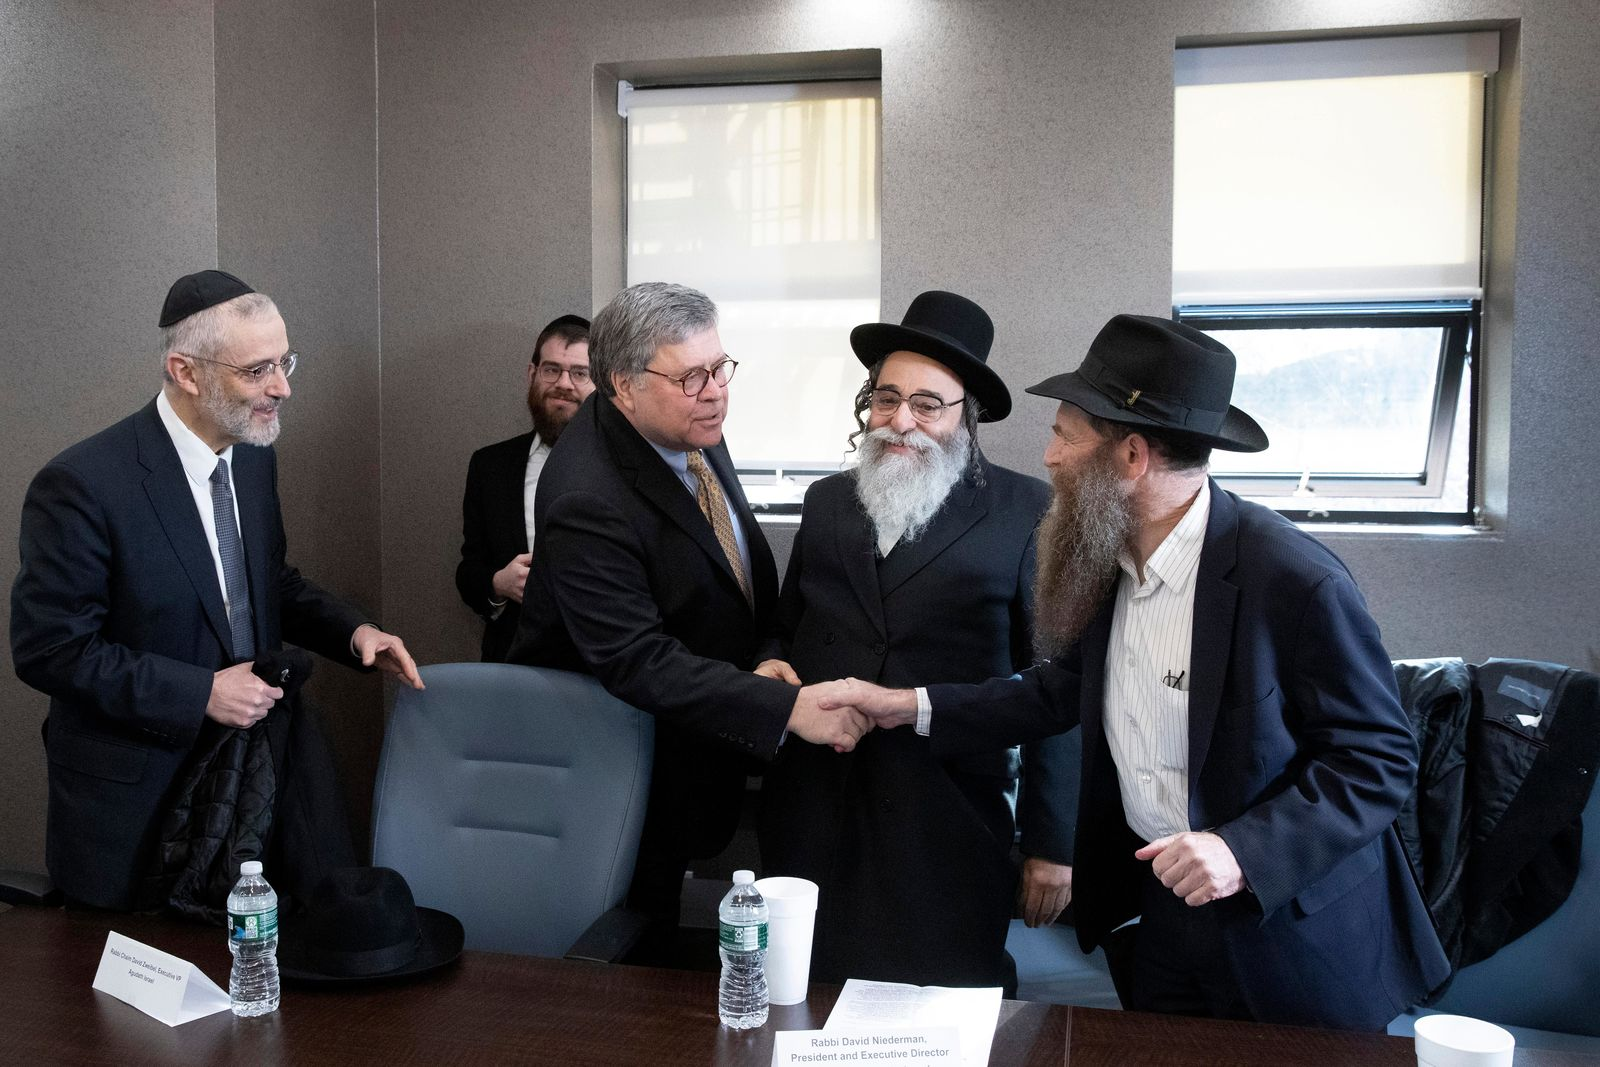 Attorney General William Barr, center, shakes hands with Rabbi Eli Cohen, right, at a meeting with Jewish leaders at the Boro Park Jewish Community Council, Tuesday, Jan. 28, 2020 in New York.{ } (AP Photo/Mark Lennihan)